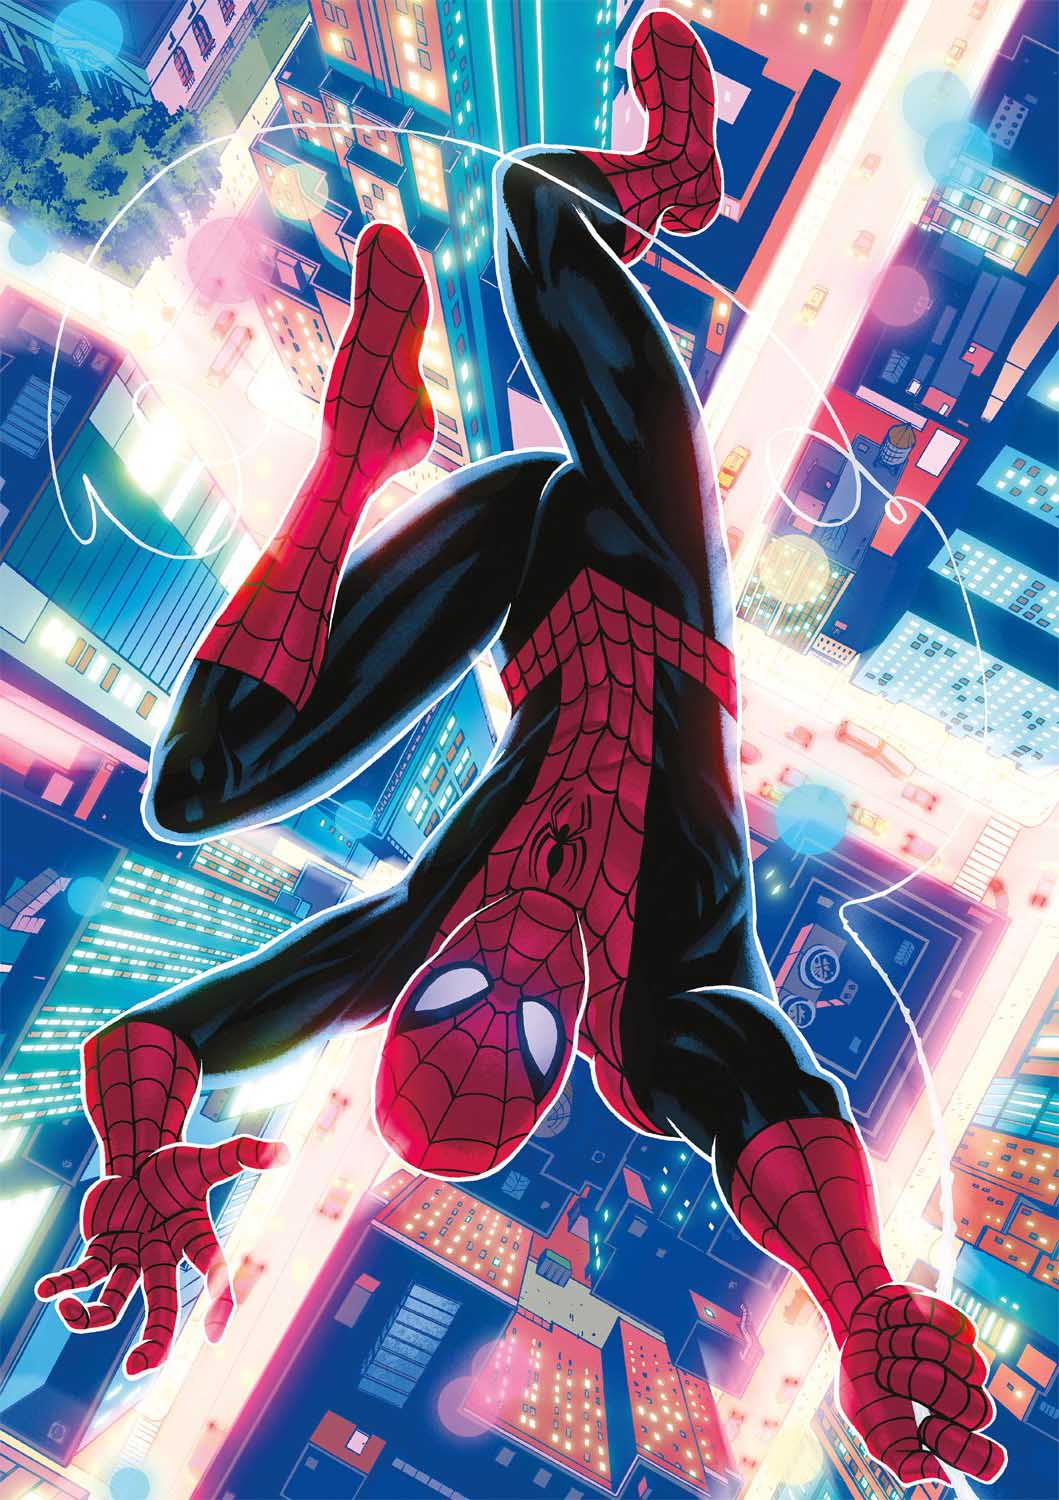 The Spectacular Spider-Man Super-heroes Jigsaw Puzzle